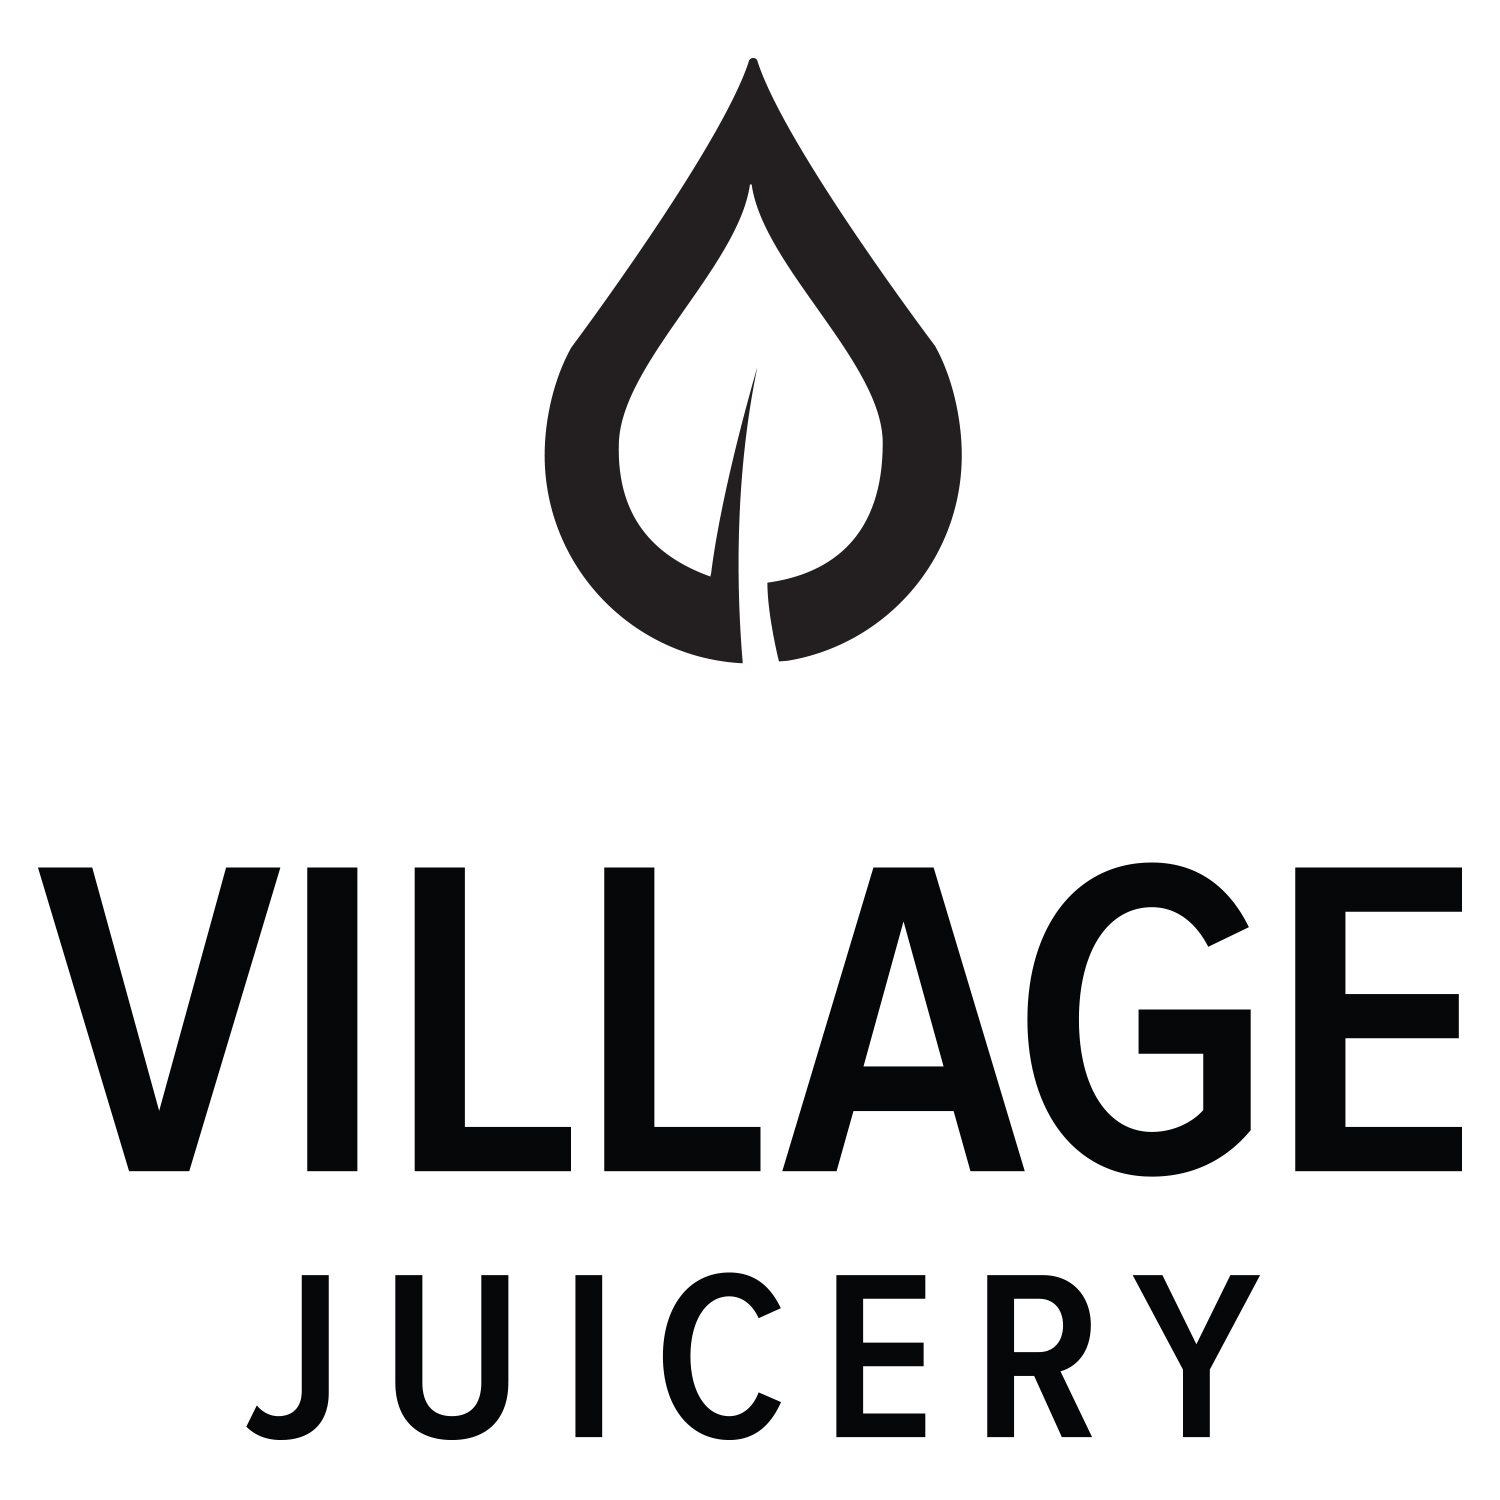 village juicery logo black